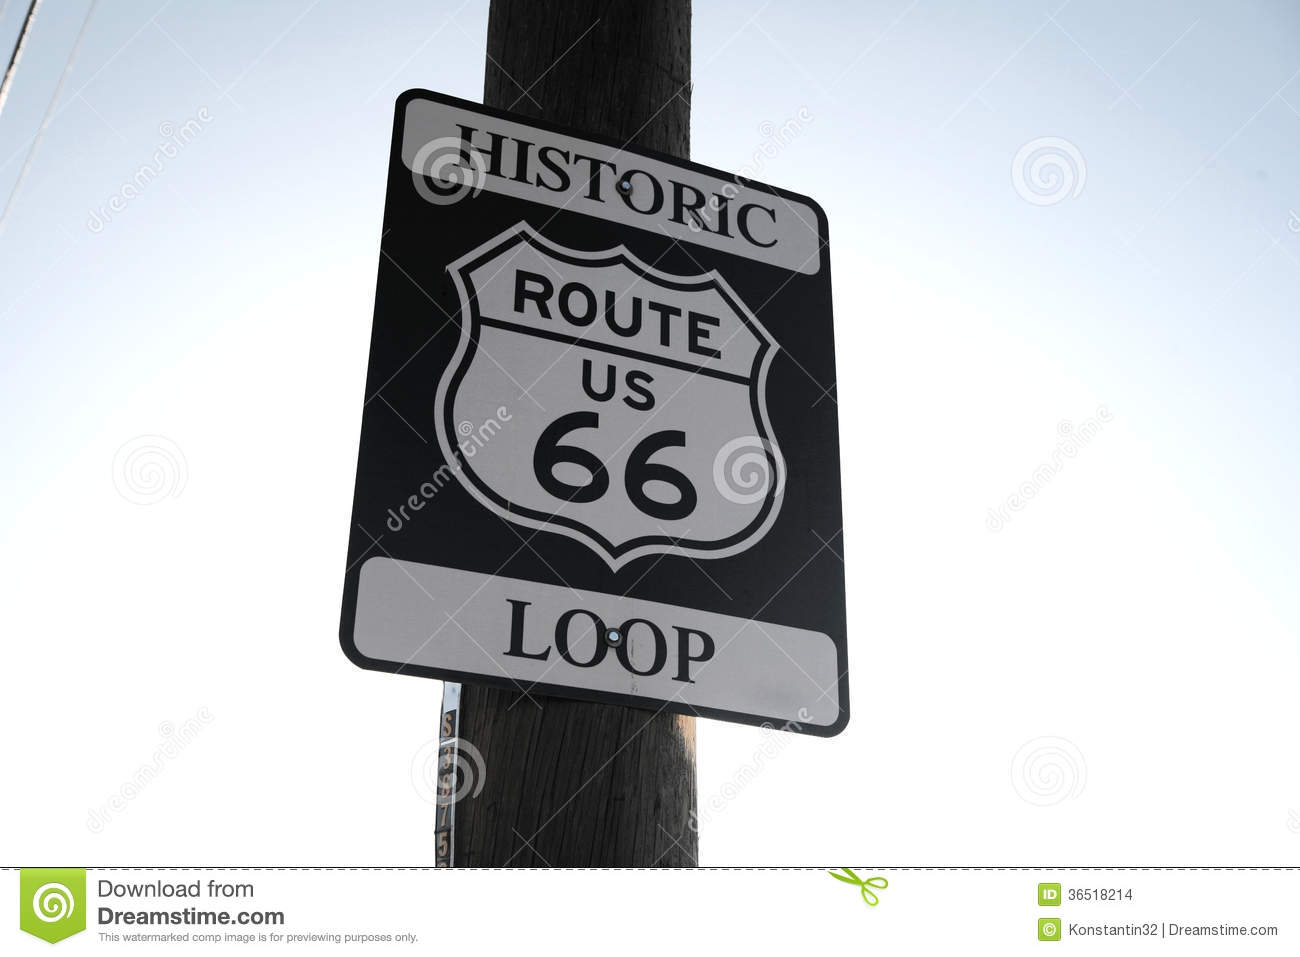 Vrai Route 66 Roadsign, Arizona, Etats-Unis